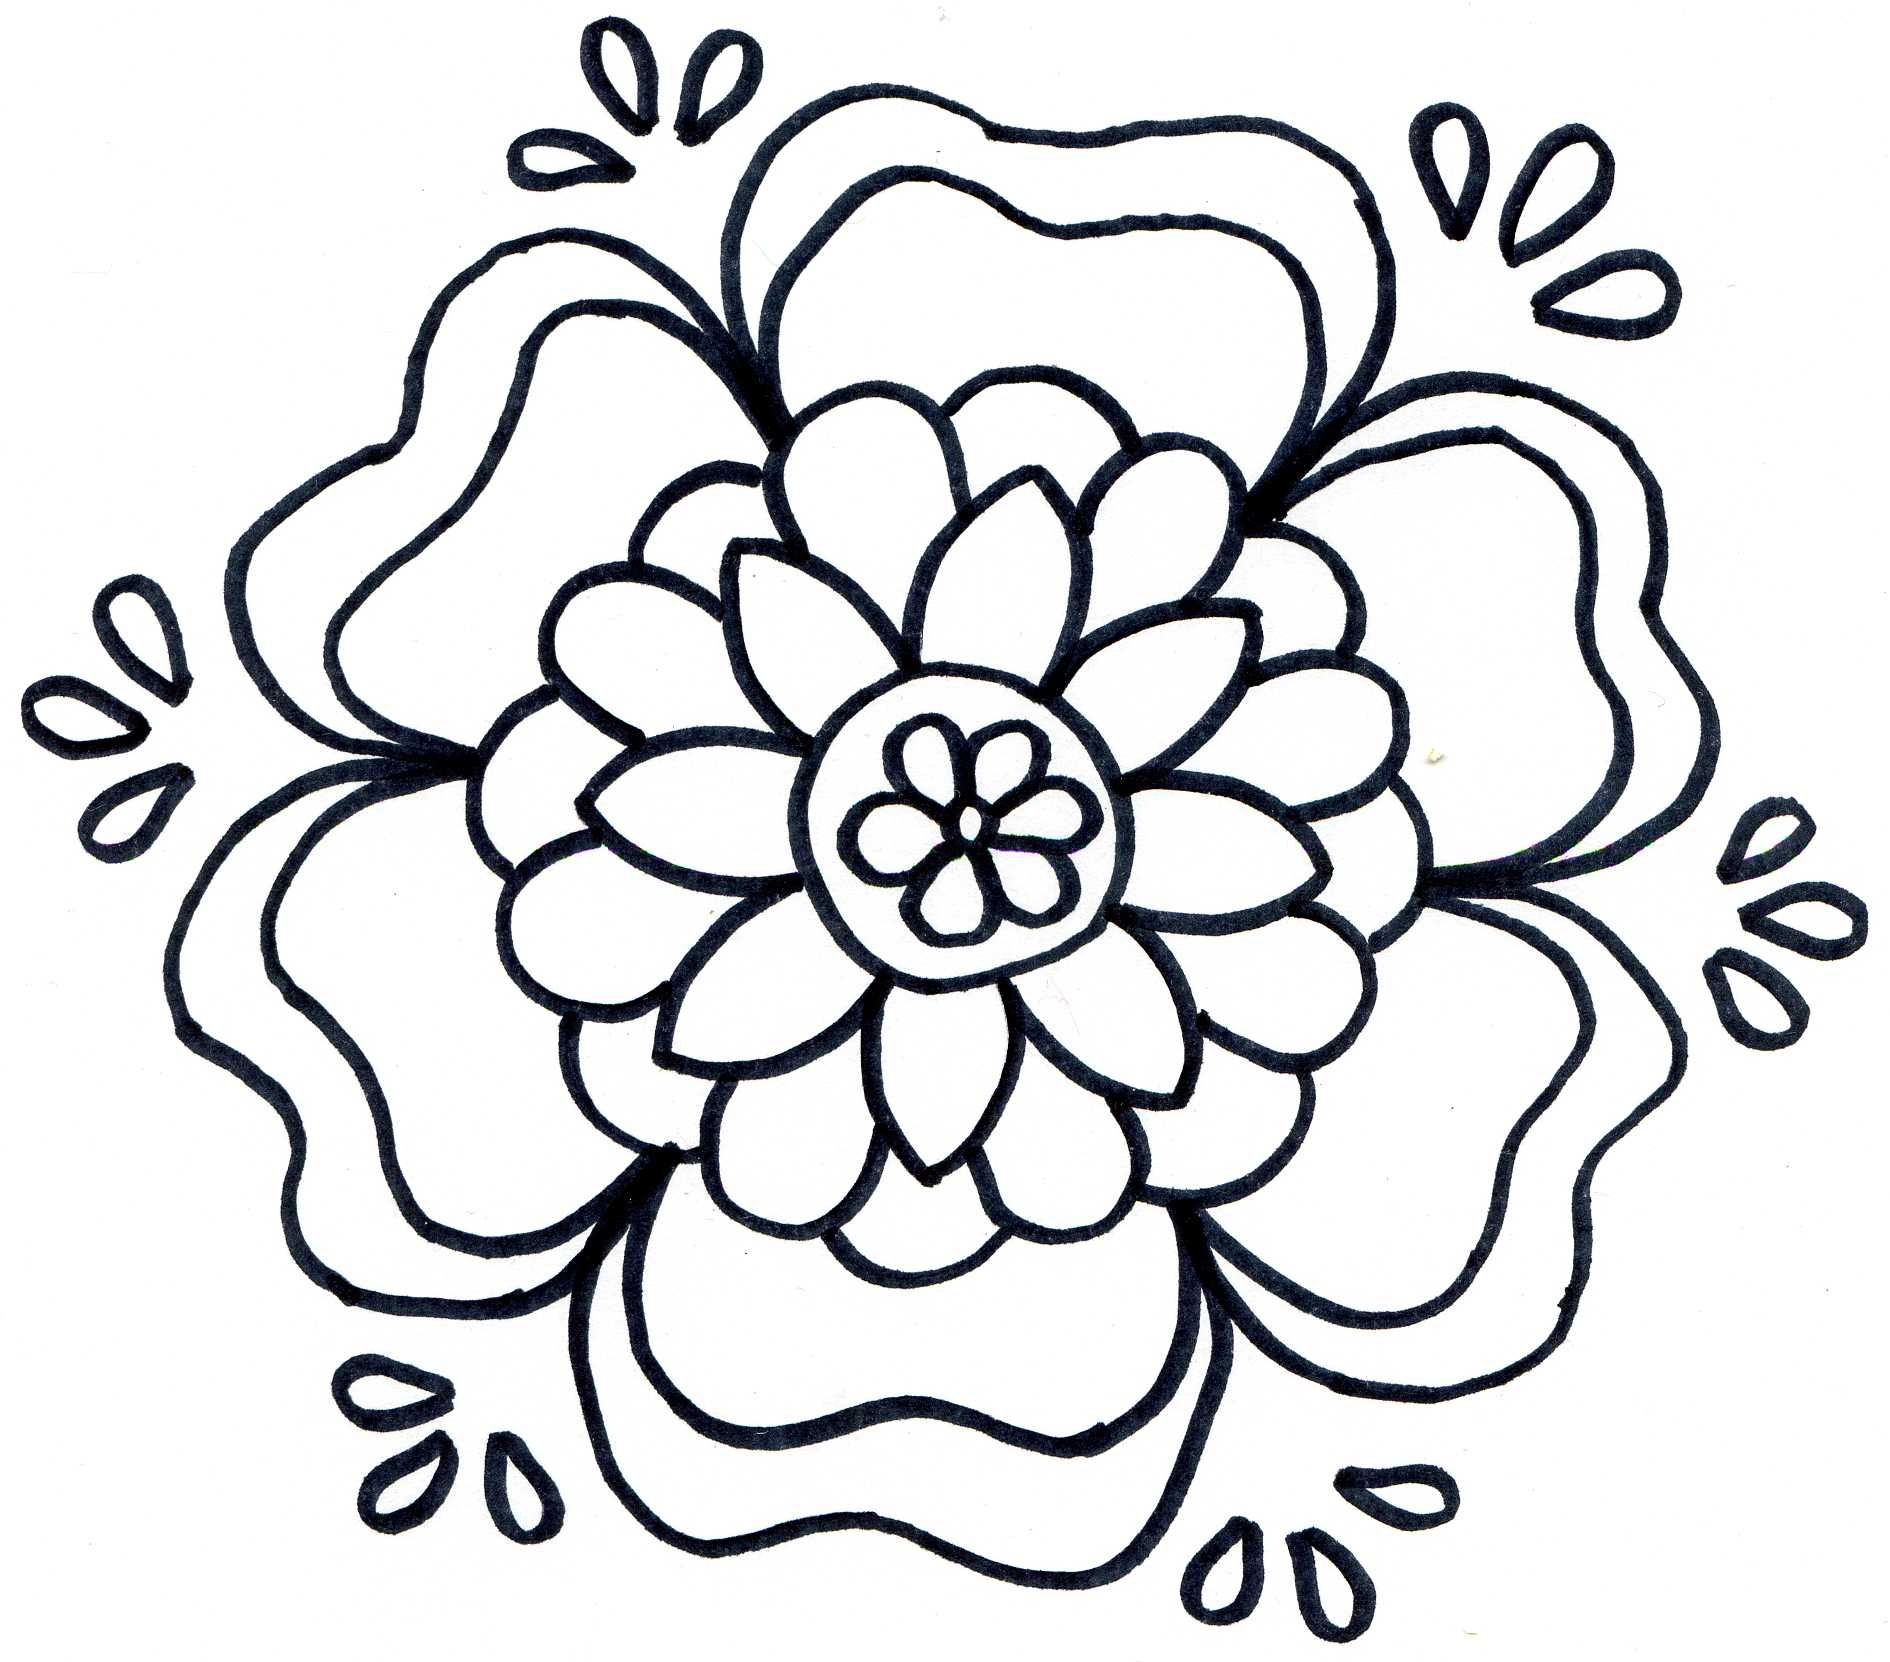 rosmaling coloring pages rosemaling pattern patterns and embroidery